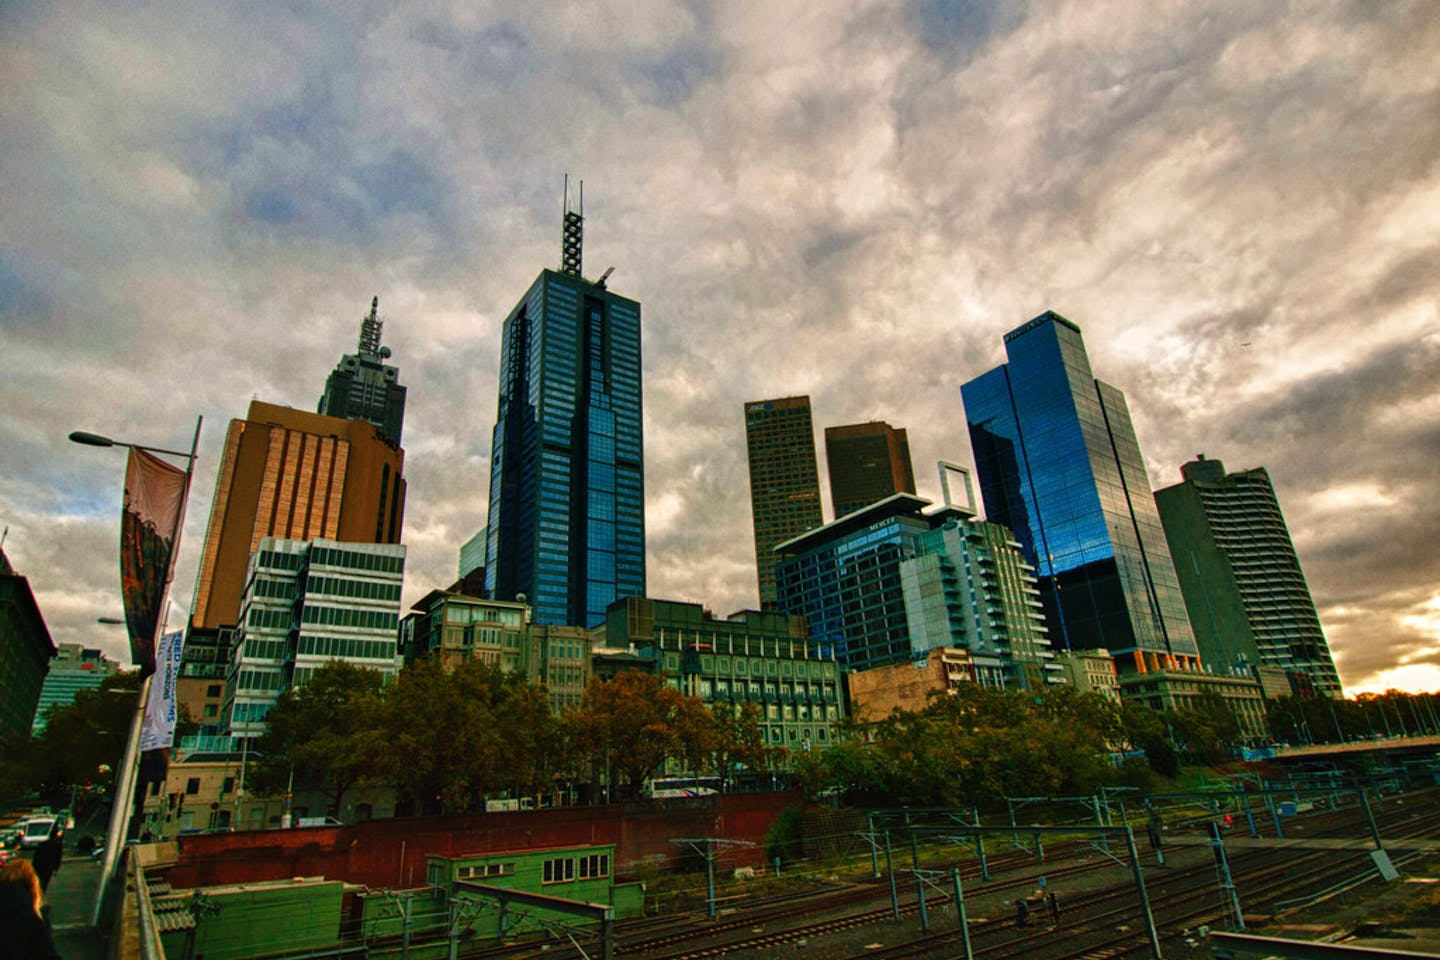 melbourne australia central business district